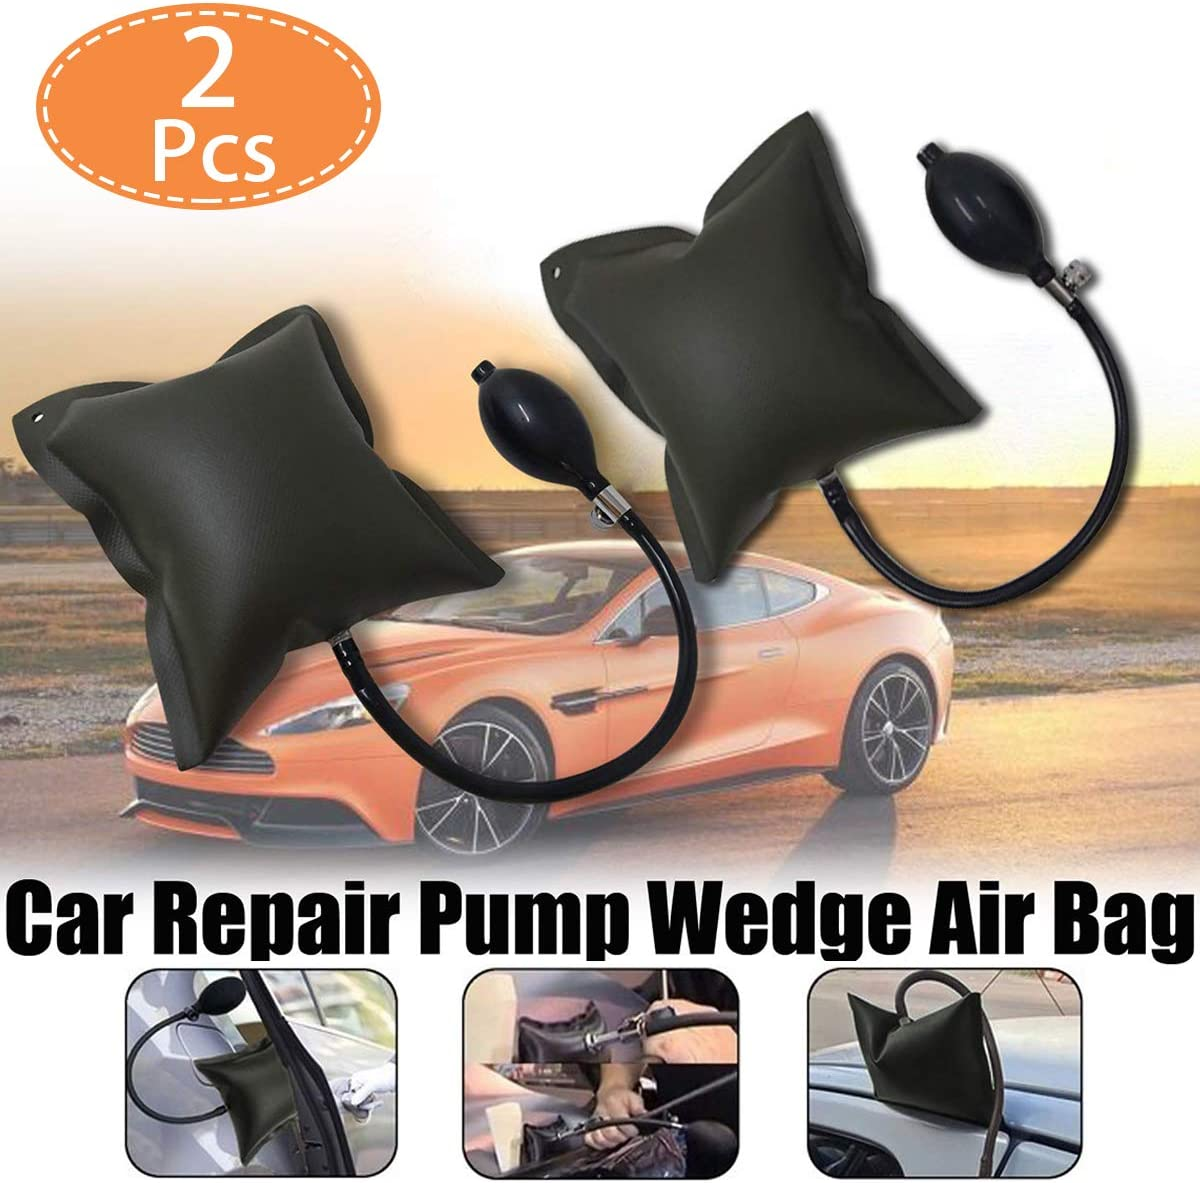 2 PCS Air Pump Bag Wedge Thick Leveling Kit and Installation